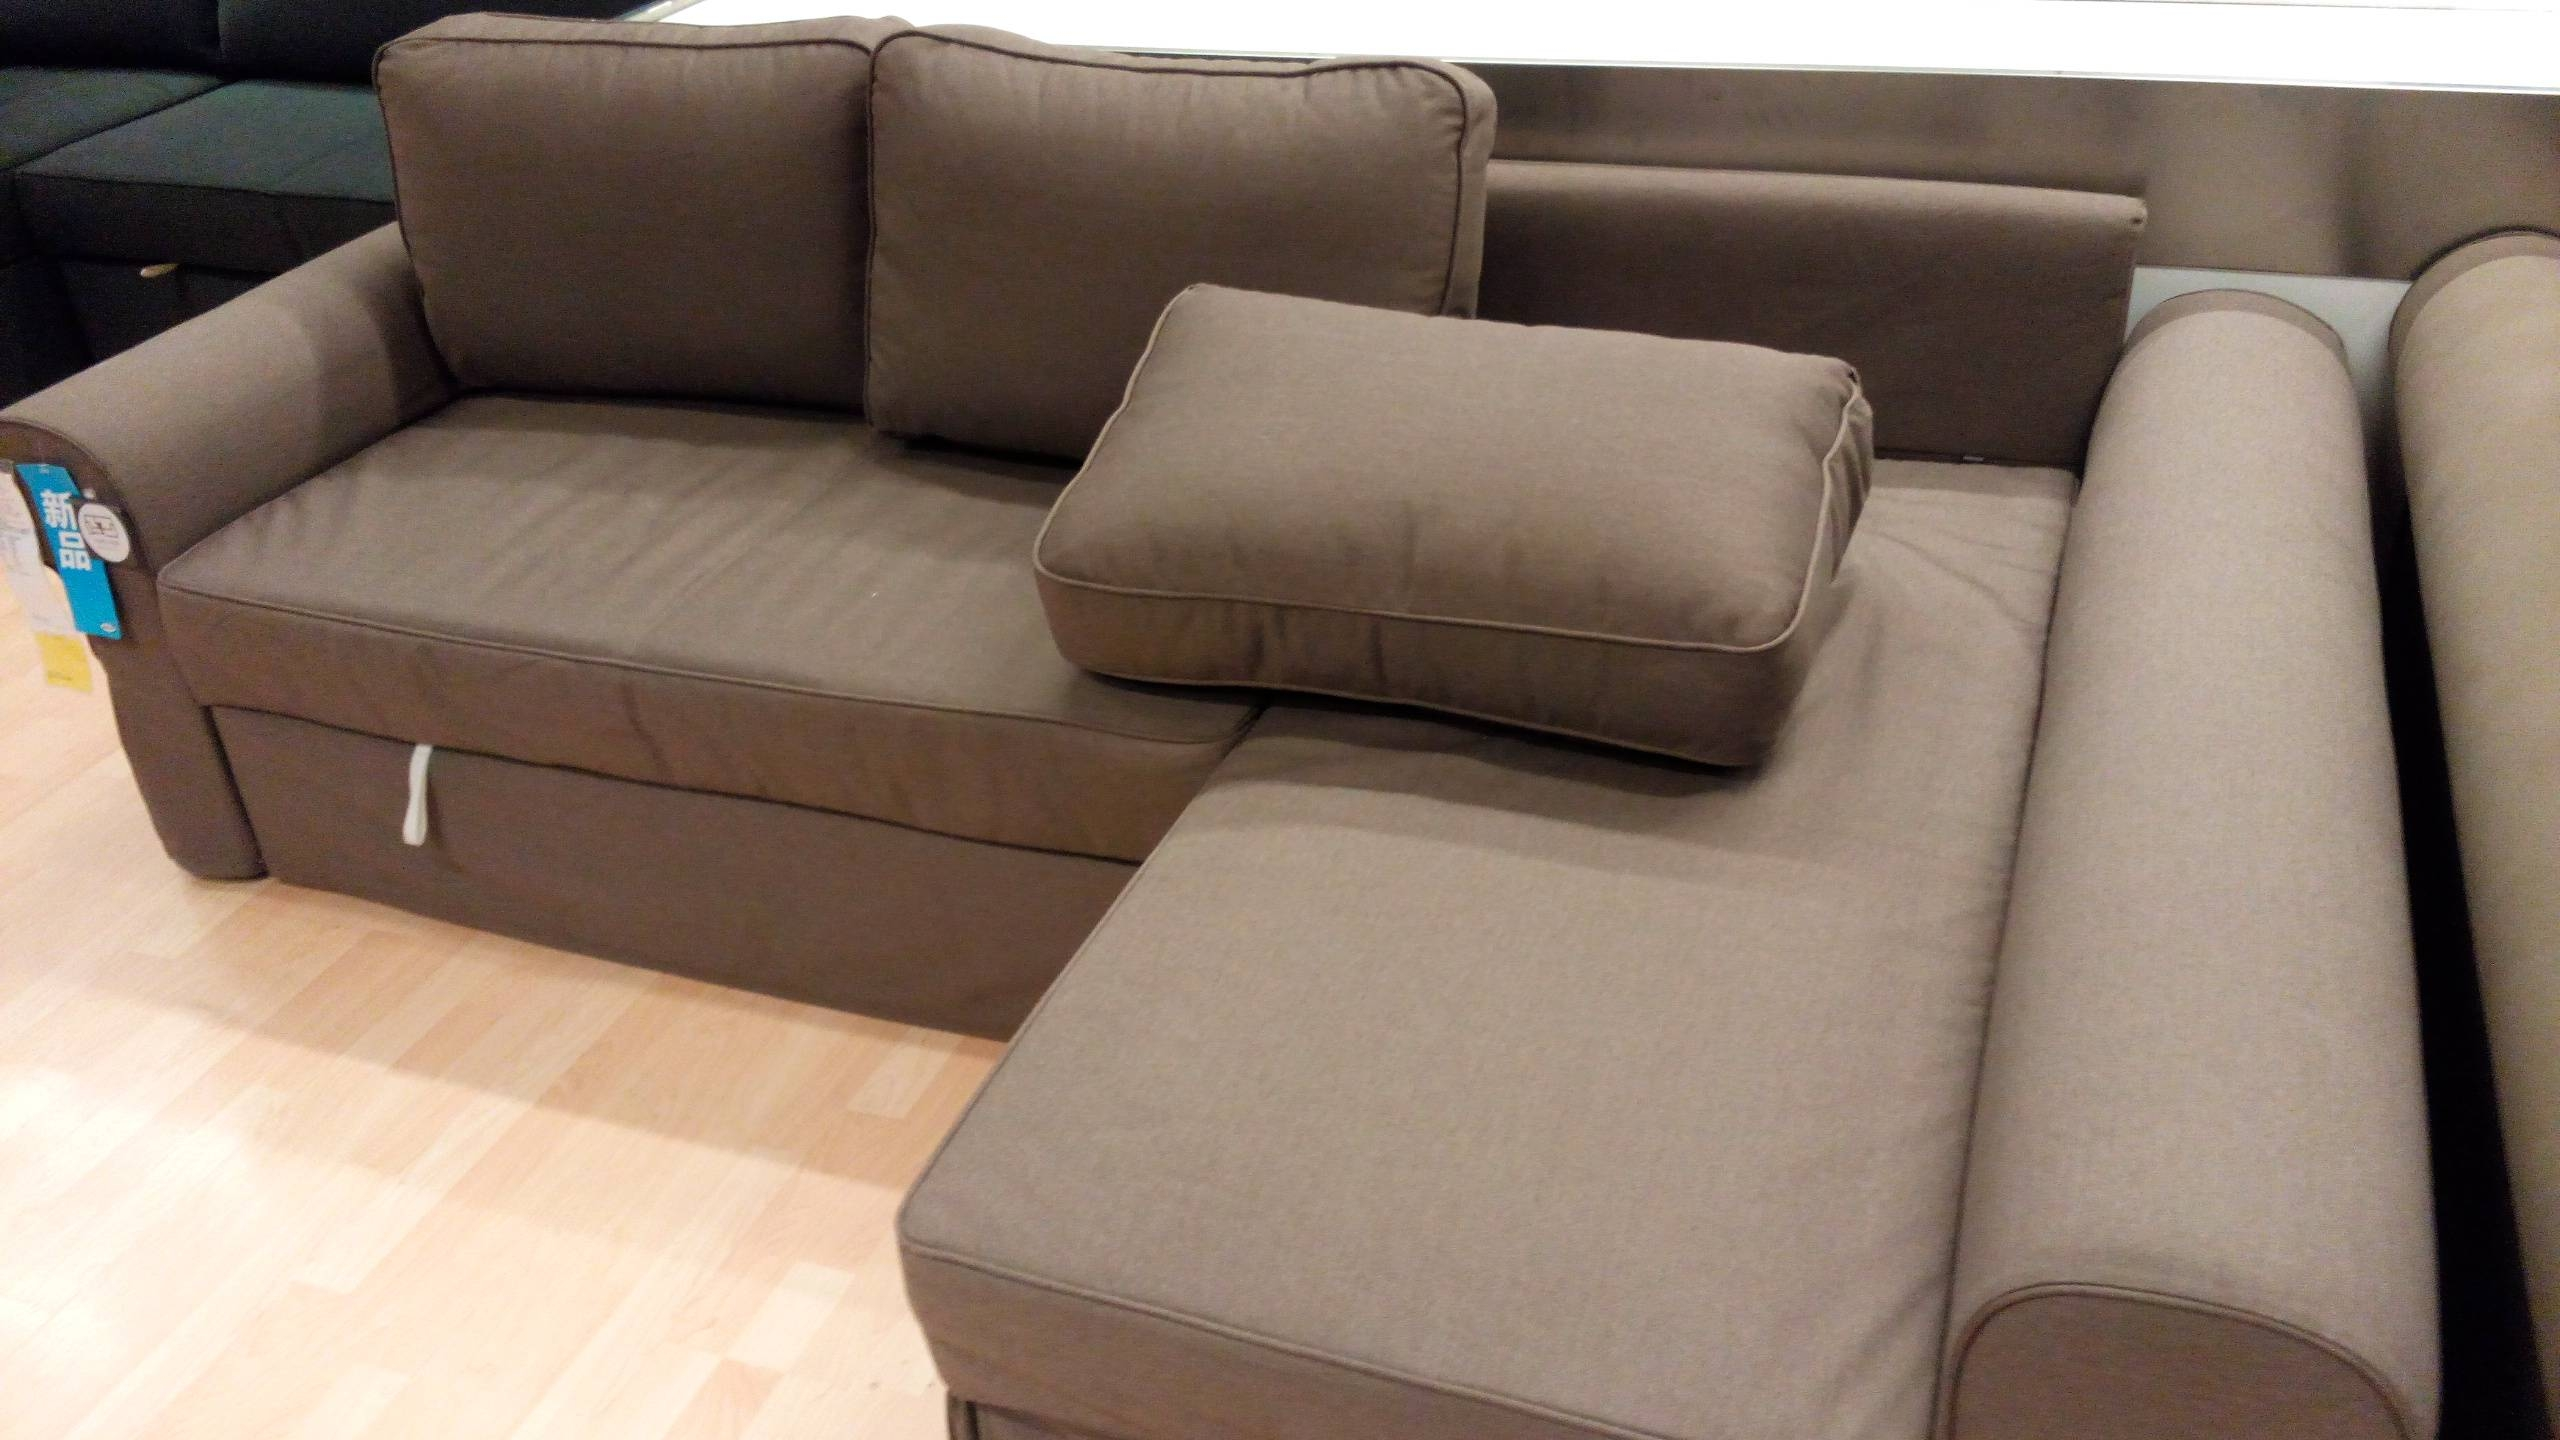 Ikea Vilasund And Backabro Review - Return Of The Sofa Bed Clones! for Sofa Beds With Chaise Lounge (Image 6 of 15)